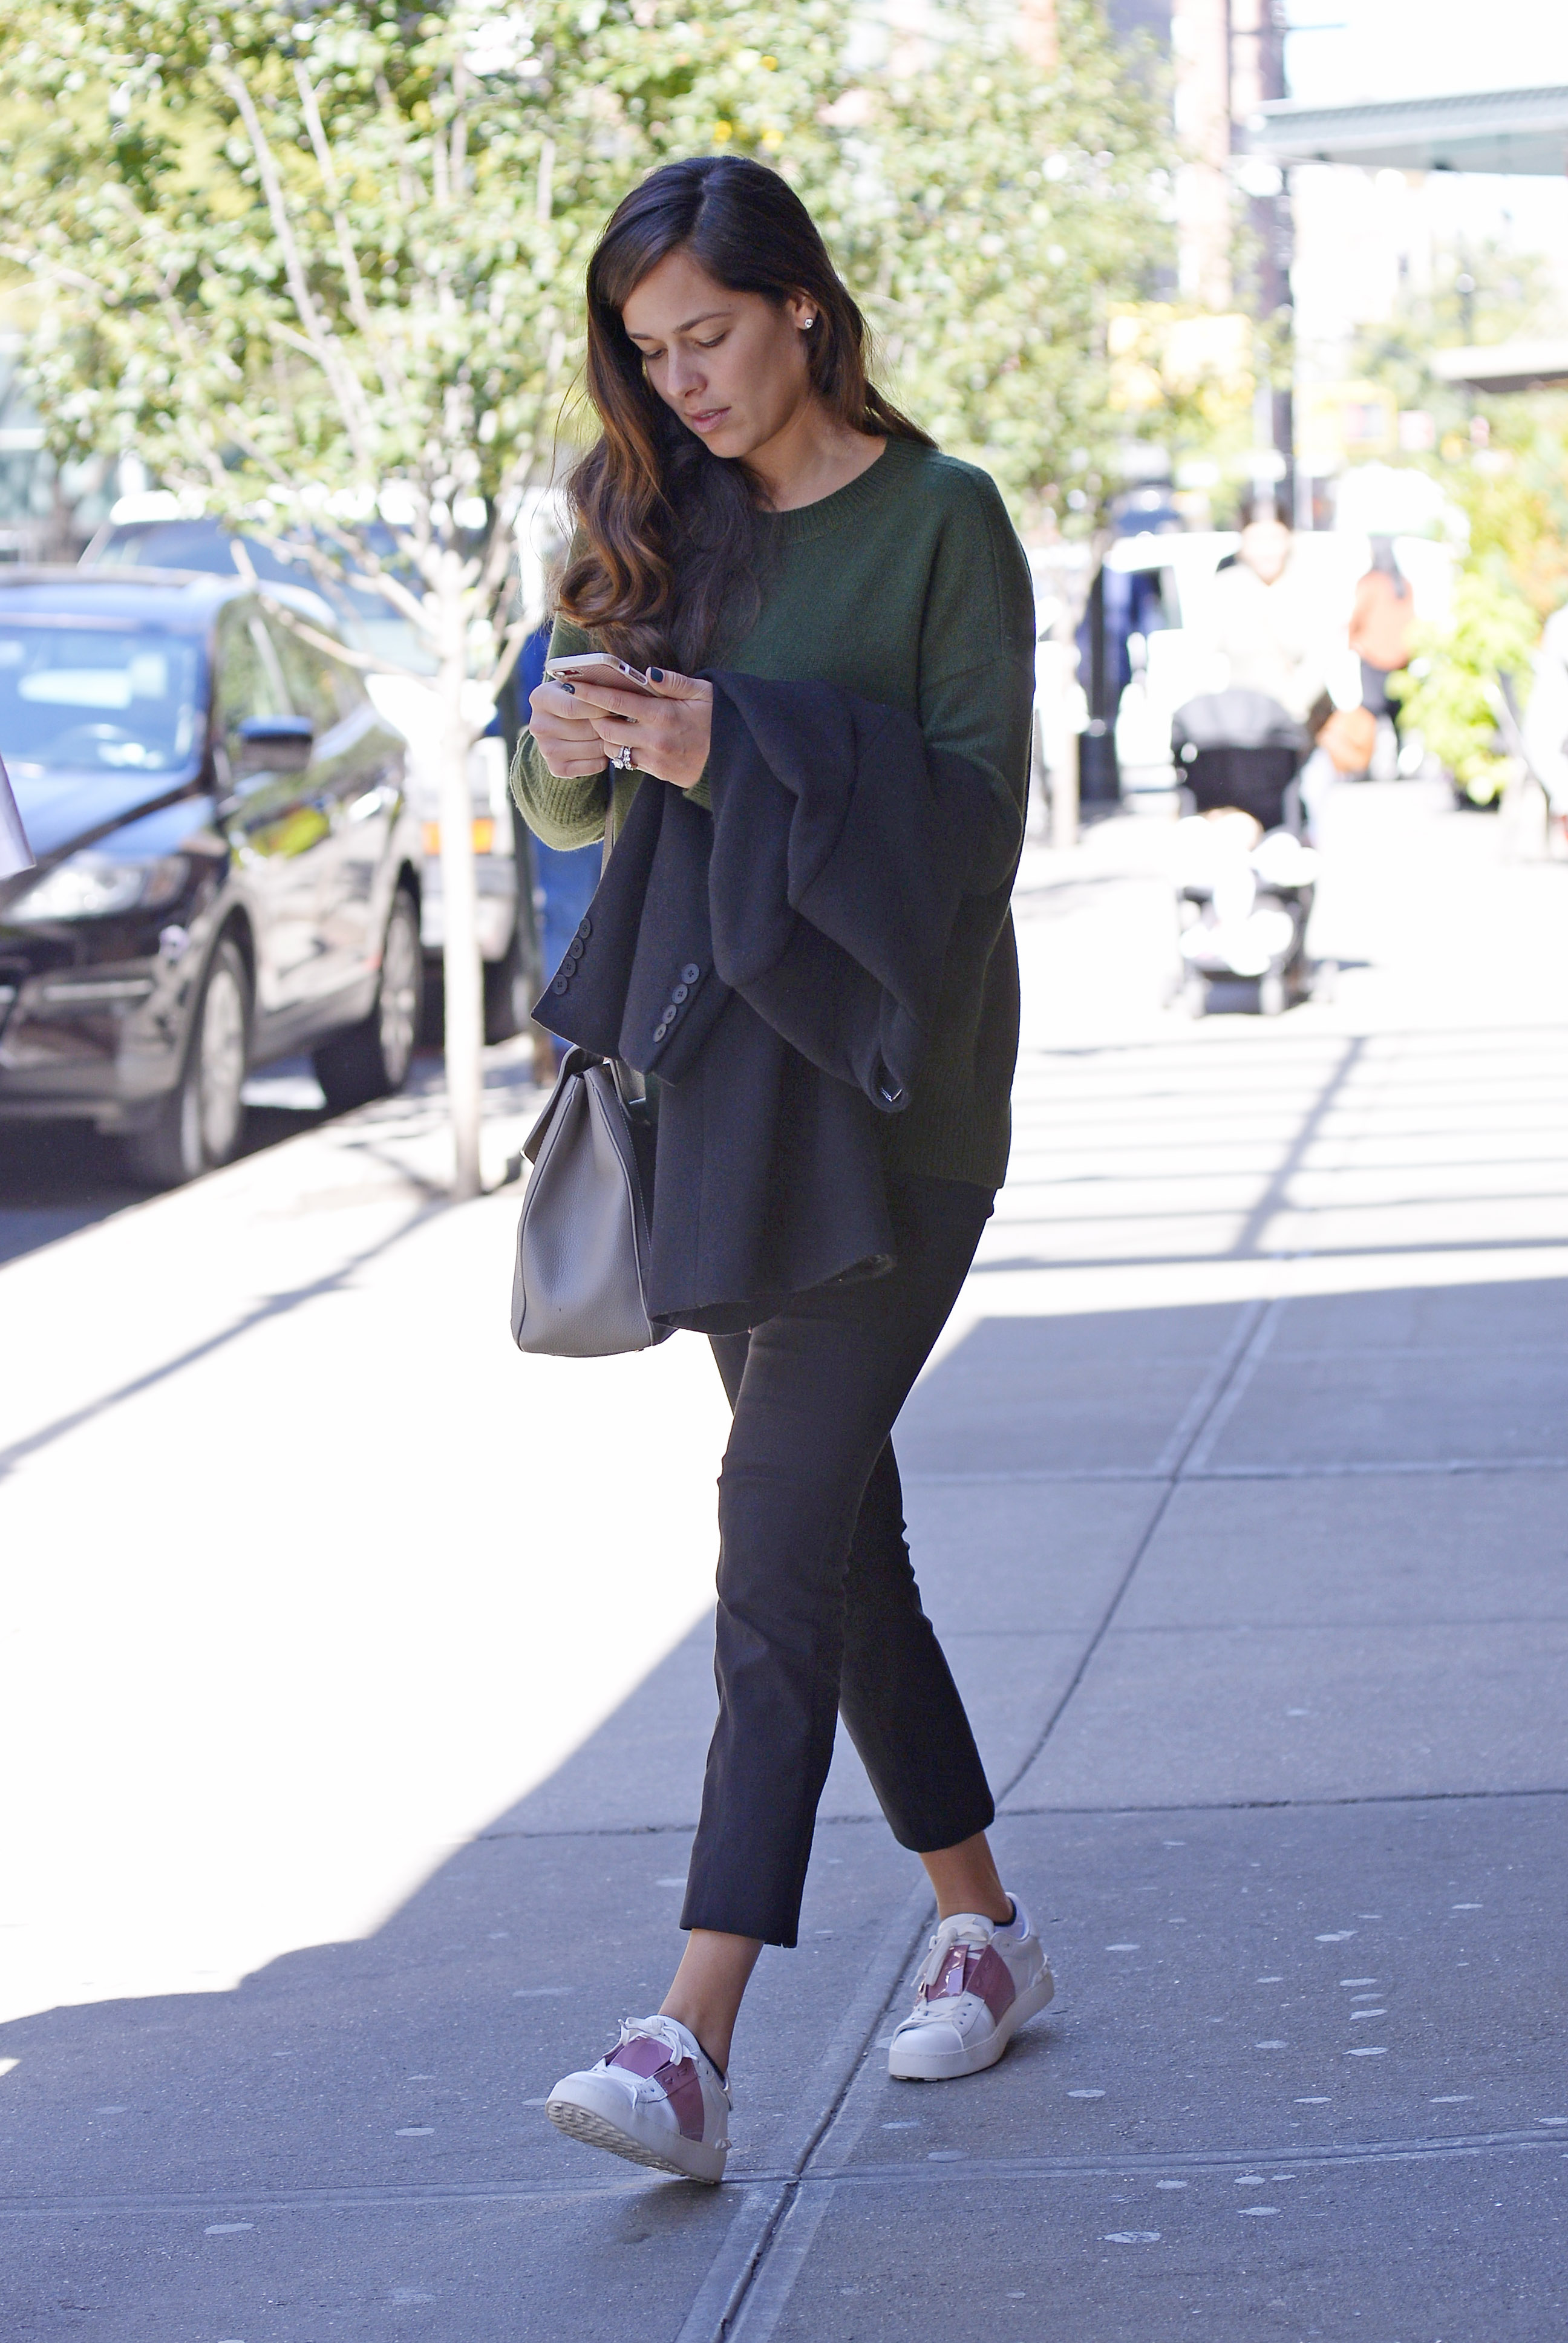 EXCLUSIVE: Ana Ivanovic, rumored to be pregnant, texts on her iPhone while checking out of the Greenwich Hotel in New York City, New York. <P> Pictured: Ana Ivanovic <B>Ref: SPL1605190  191017   EXCLUSIVE</B><BR/> Picture by: Edward Opi / Splash News<BR/> </P><P> <B>Splash News and Pictures</B><BR/> Los Angeles:310-821-2666<BR/> New York:212-619-2666<BR/> London:870-934-2666<BR/> <span id=